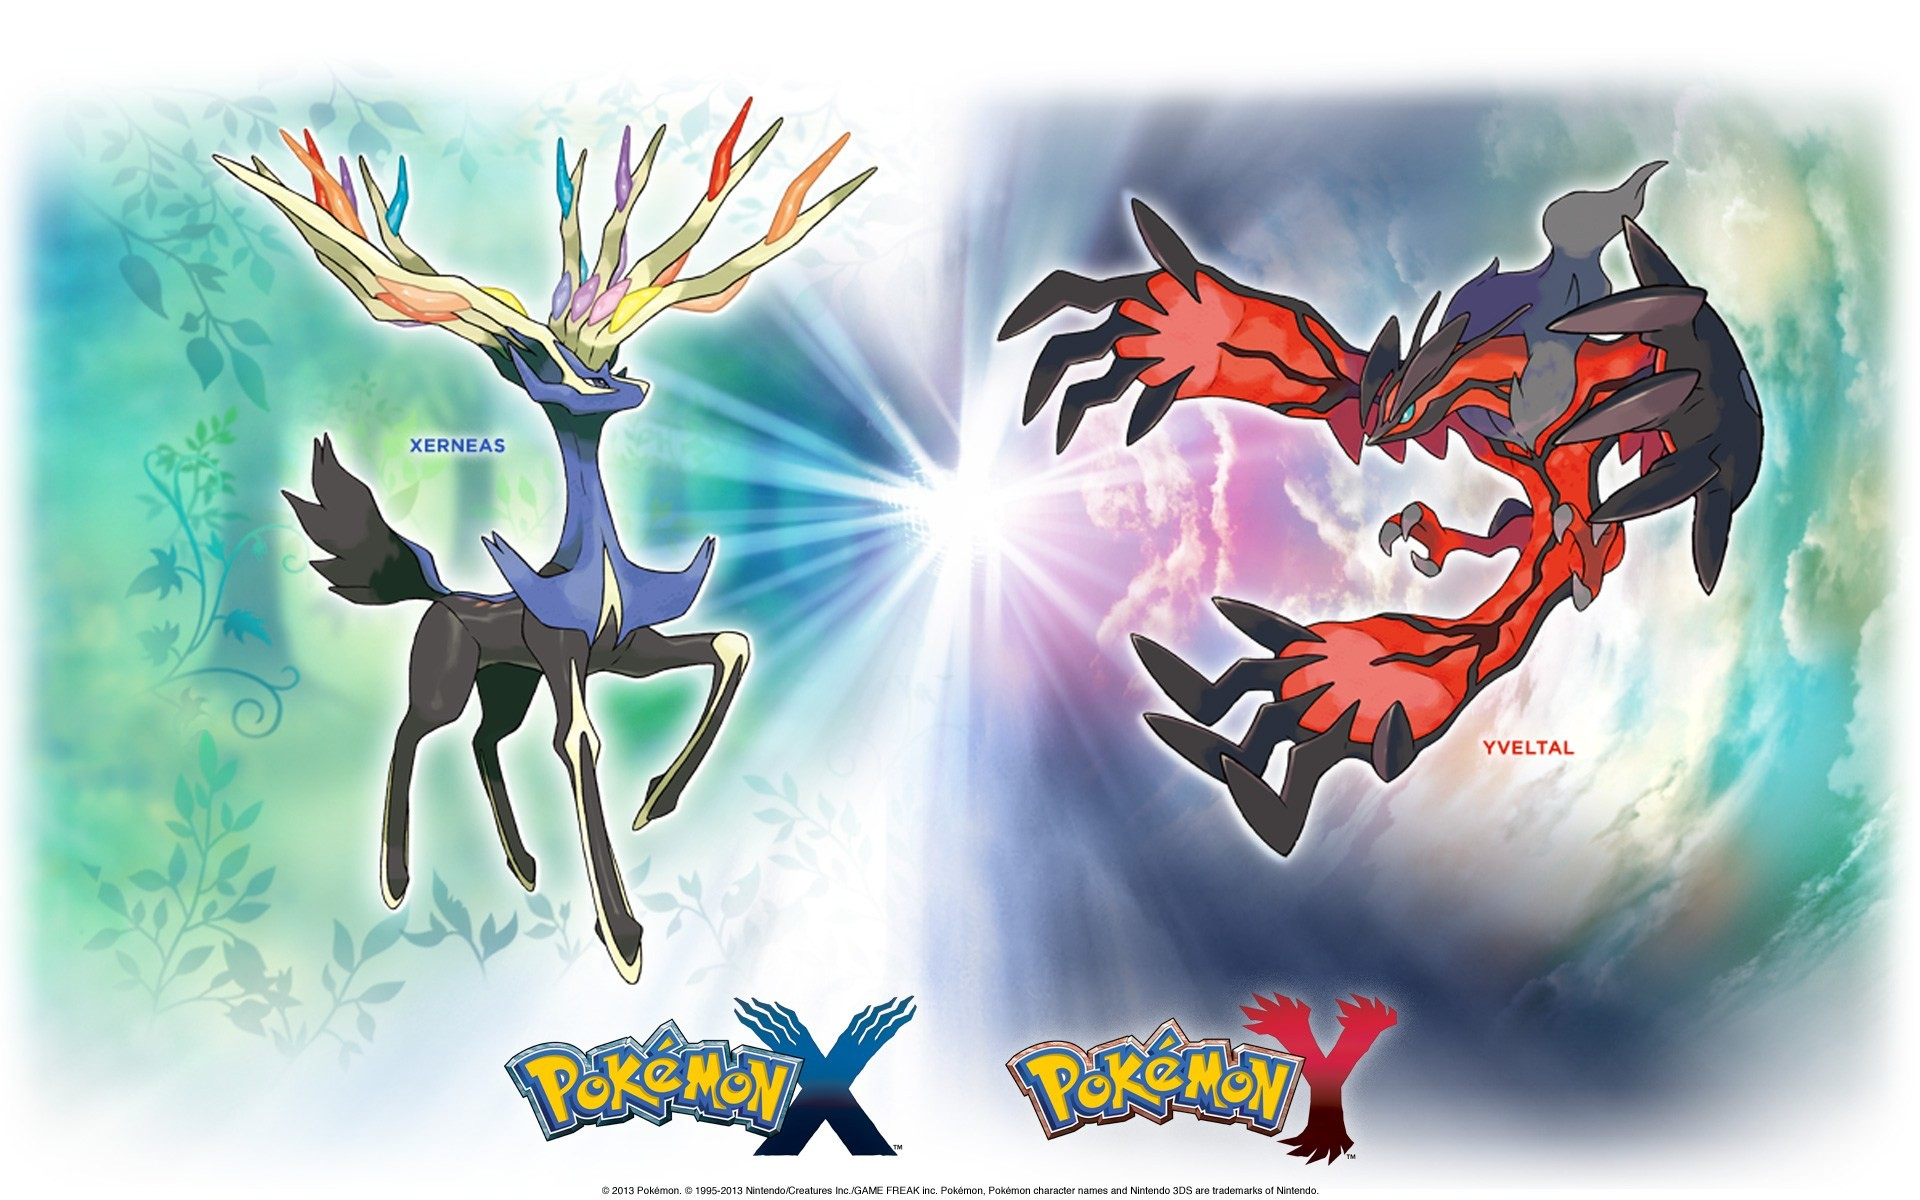 … Awesome Pokemon X Y Legendaries Wallpaper Free Wallpaper For Desktop  and Mobile in All Resolutions Free Download